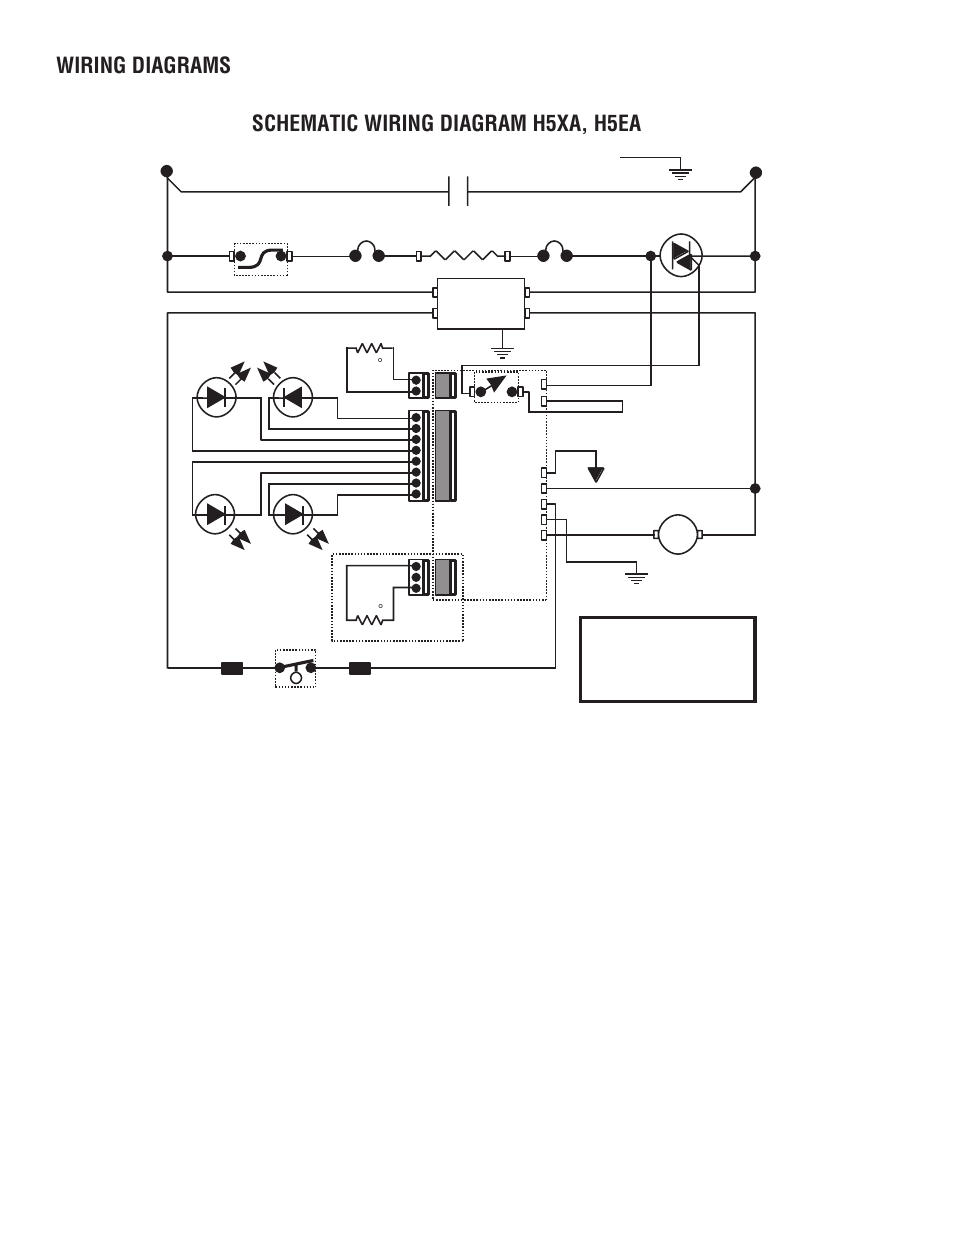 medium resolution of 230 volts a c 2 wire single phase schematic wiring diagram h5xa h5ea wiring